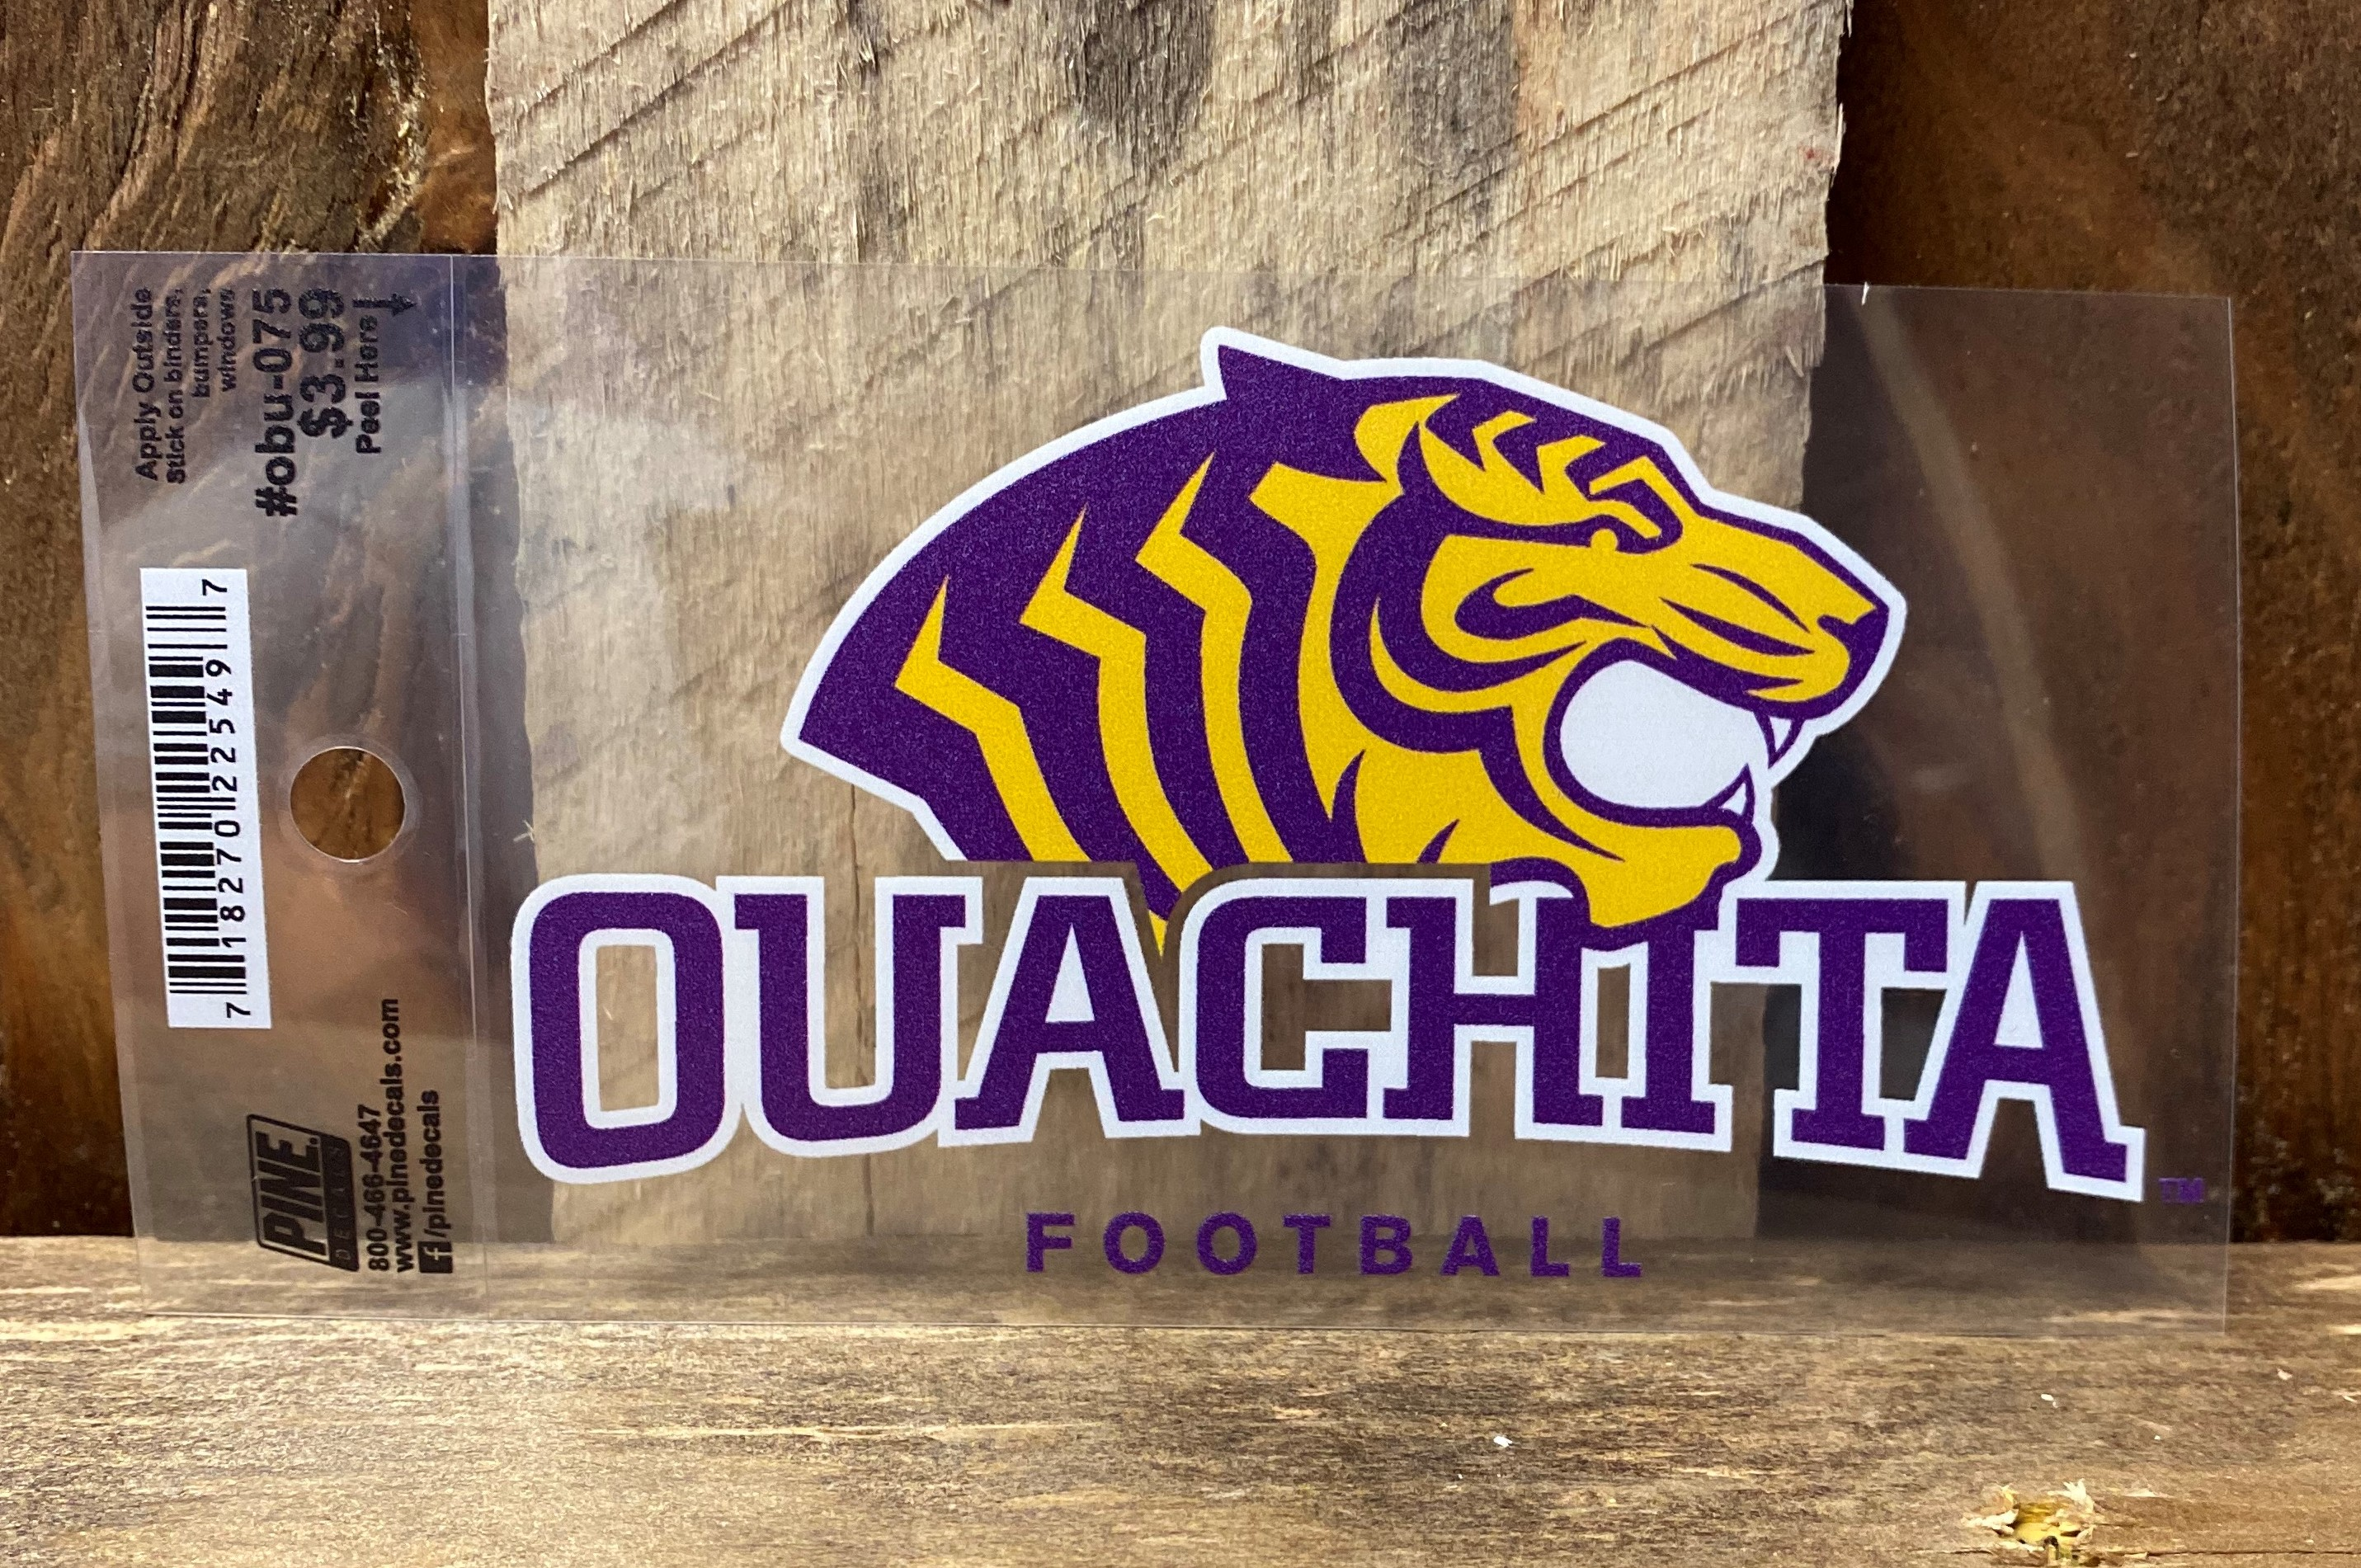 OUACHITA FOOTBALL CAR DECAL